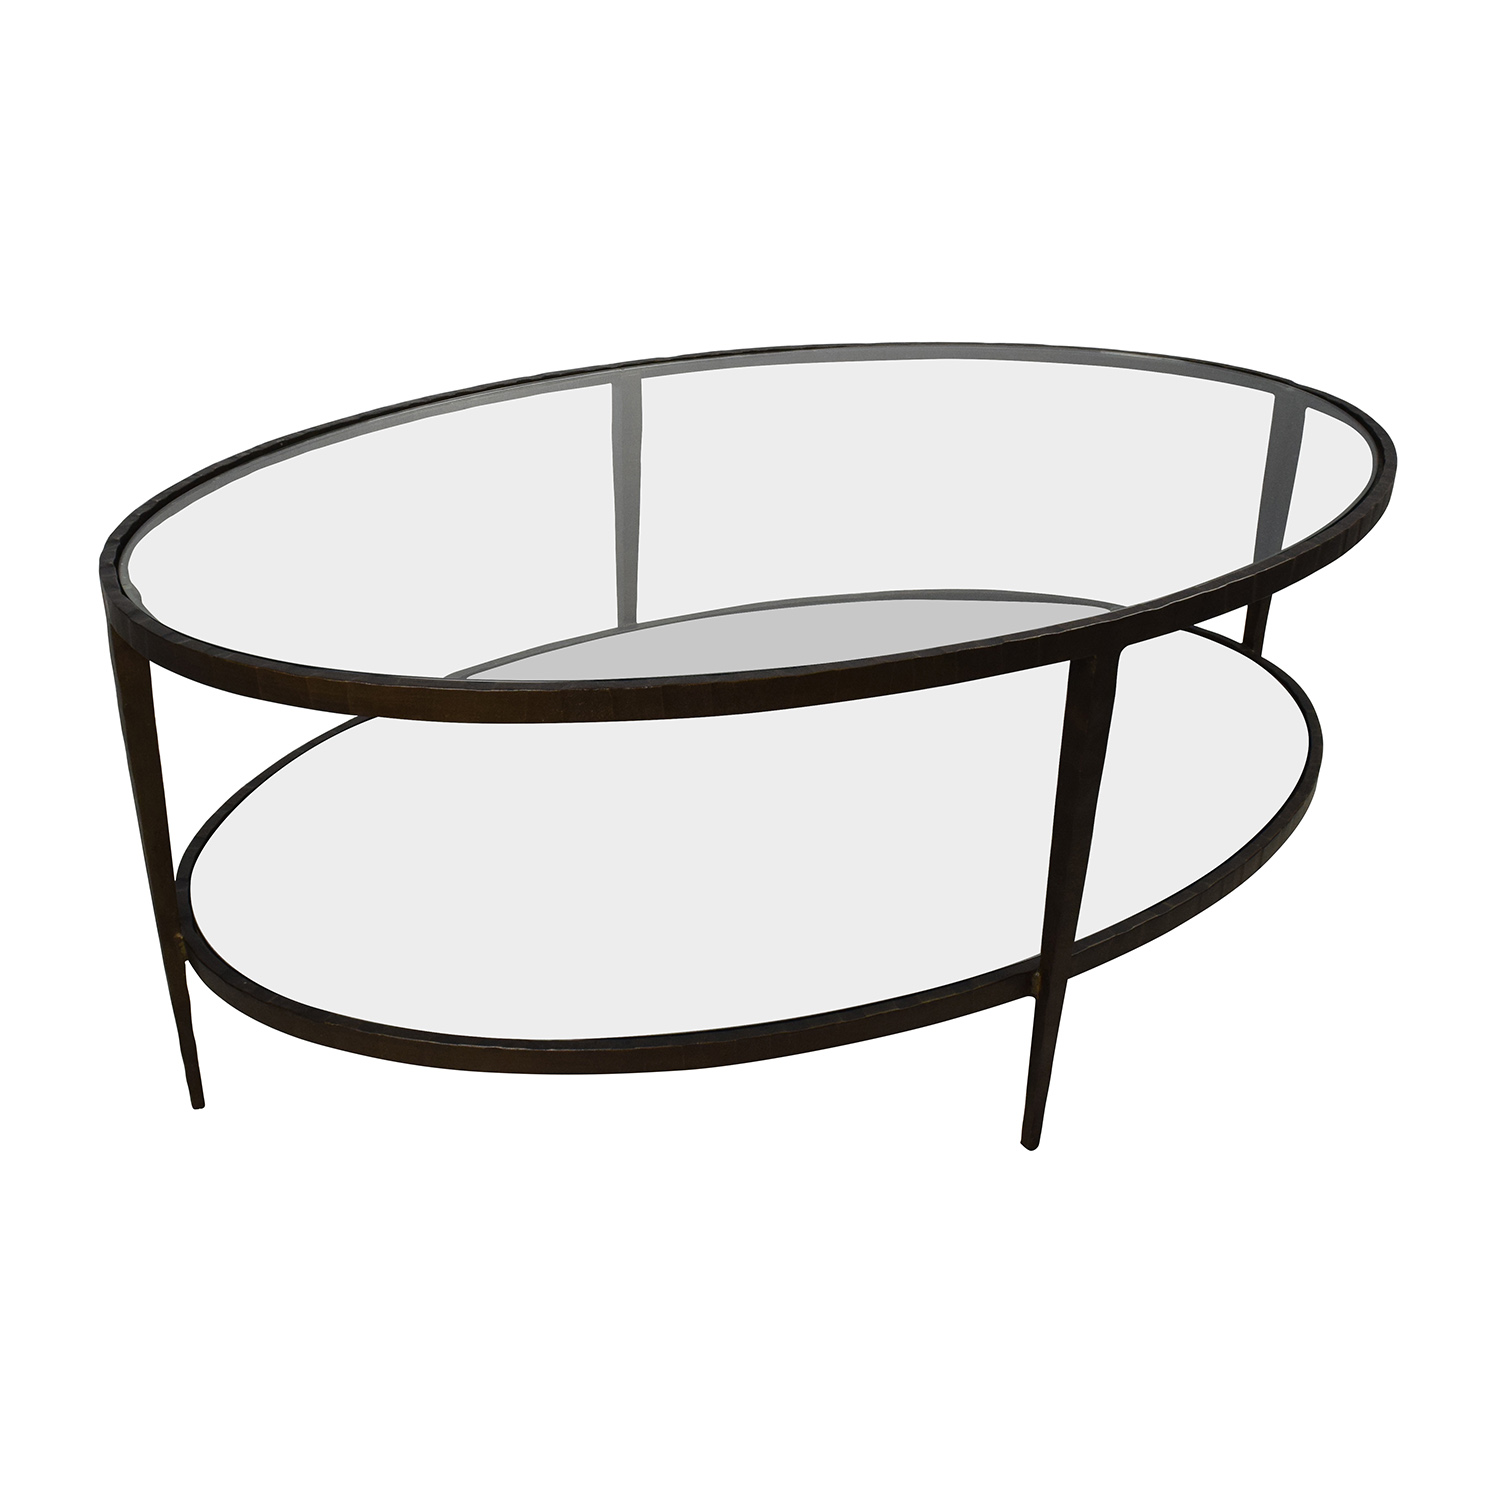 Crate & Barrel Crate & Barrel Clairmont Glass Coffee Table coupon